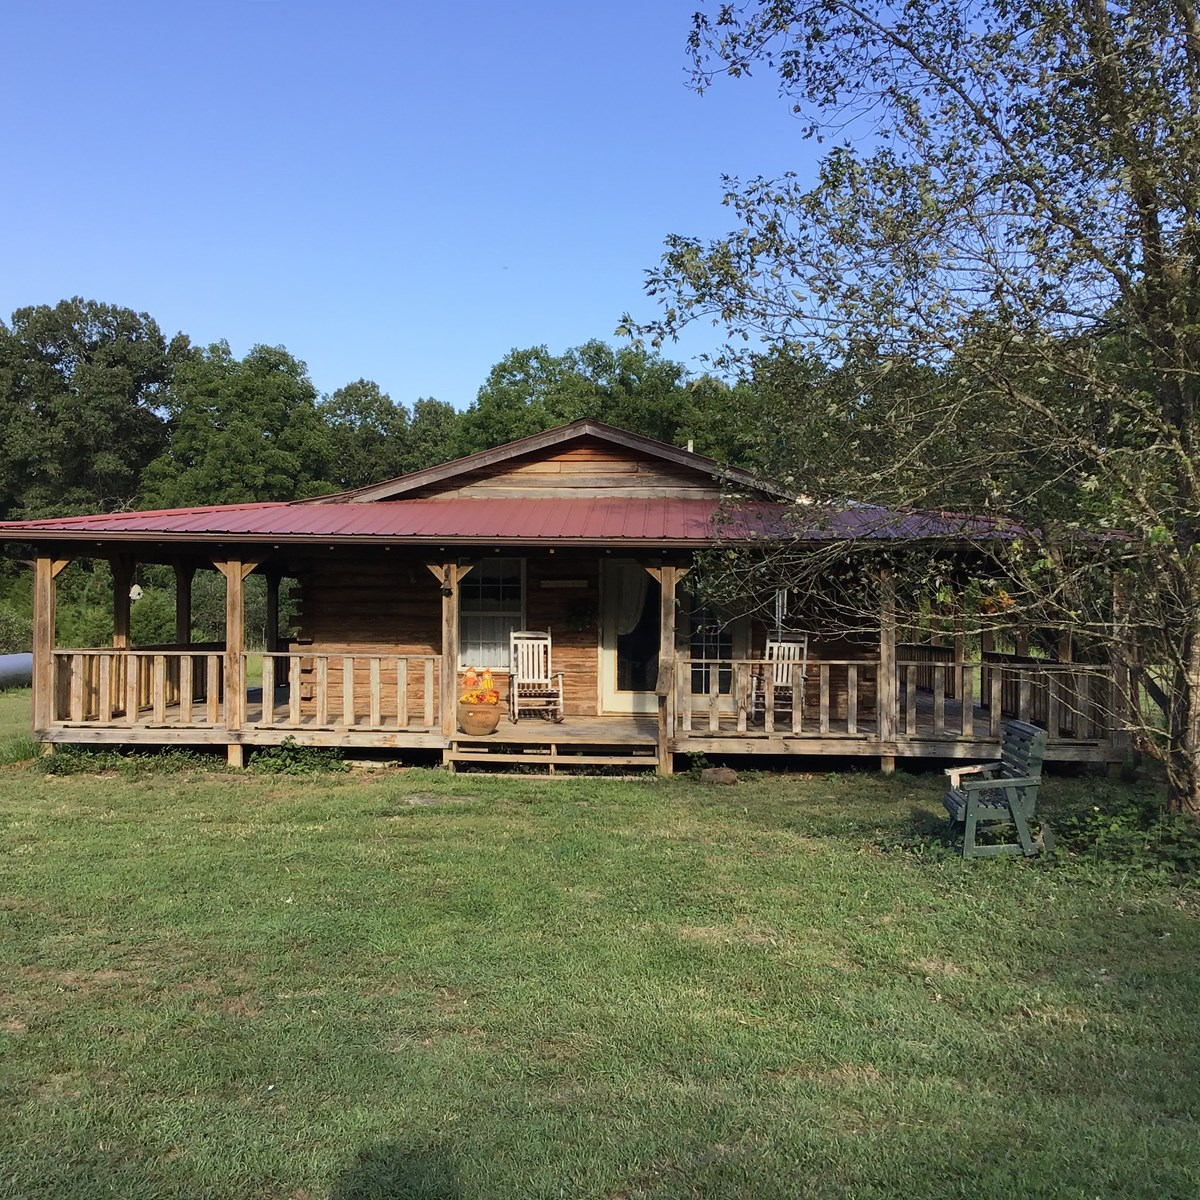 Secluded Log Cabin, 54 Wooded Acres, Bryant Creek  So. MO